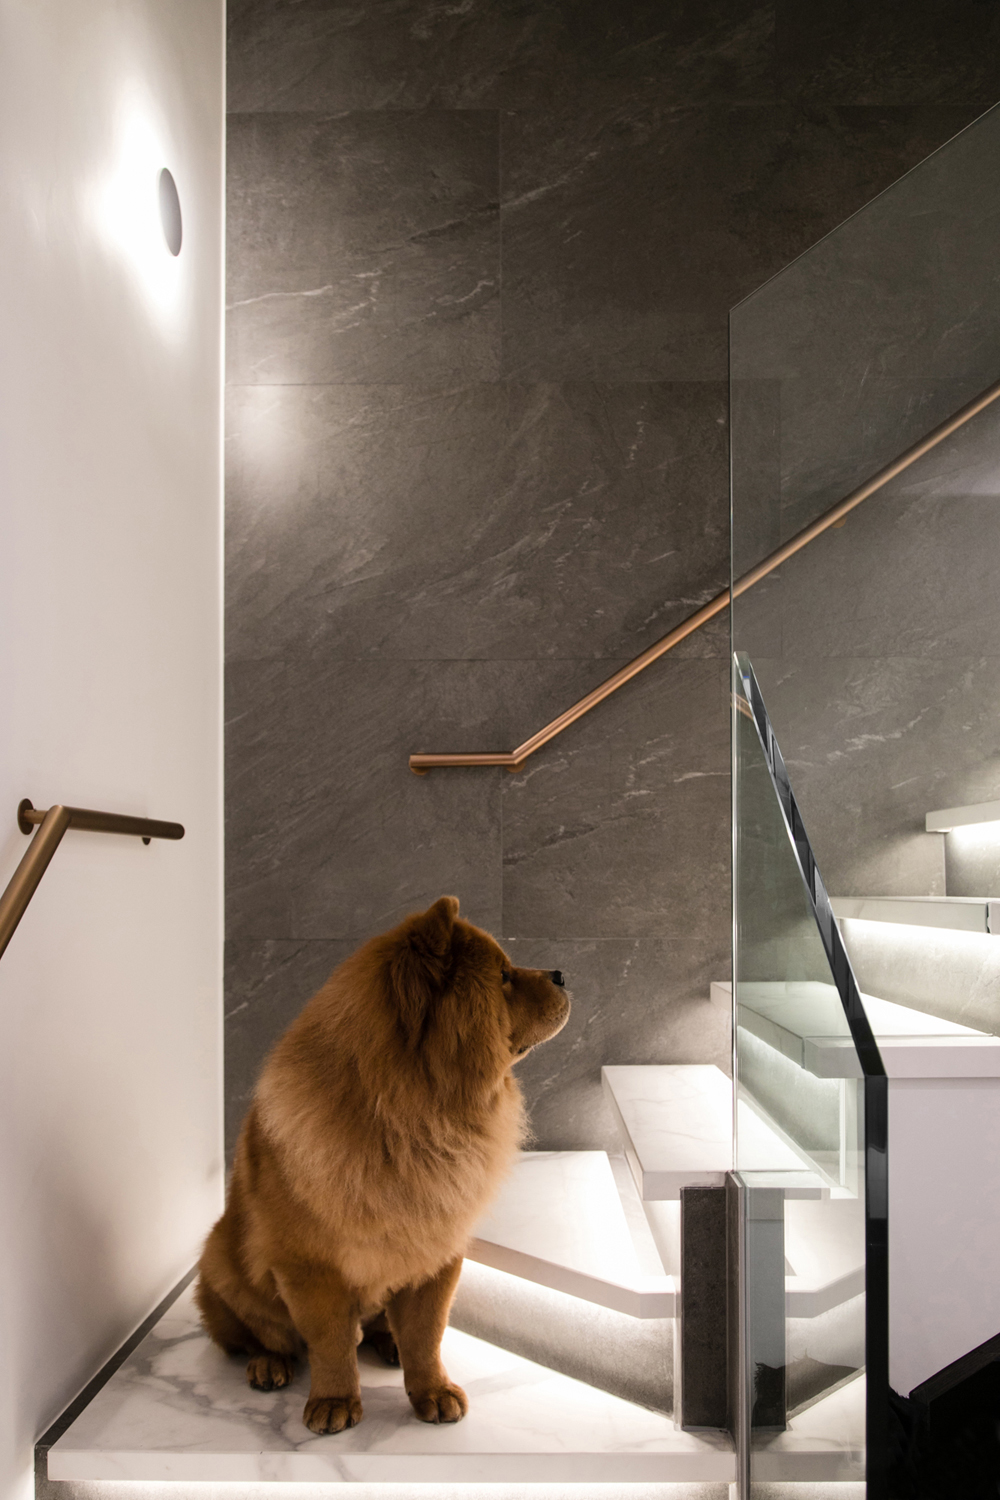 Split-Level apartment in Hong Kong... with a cute dog